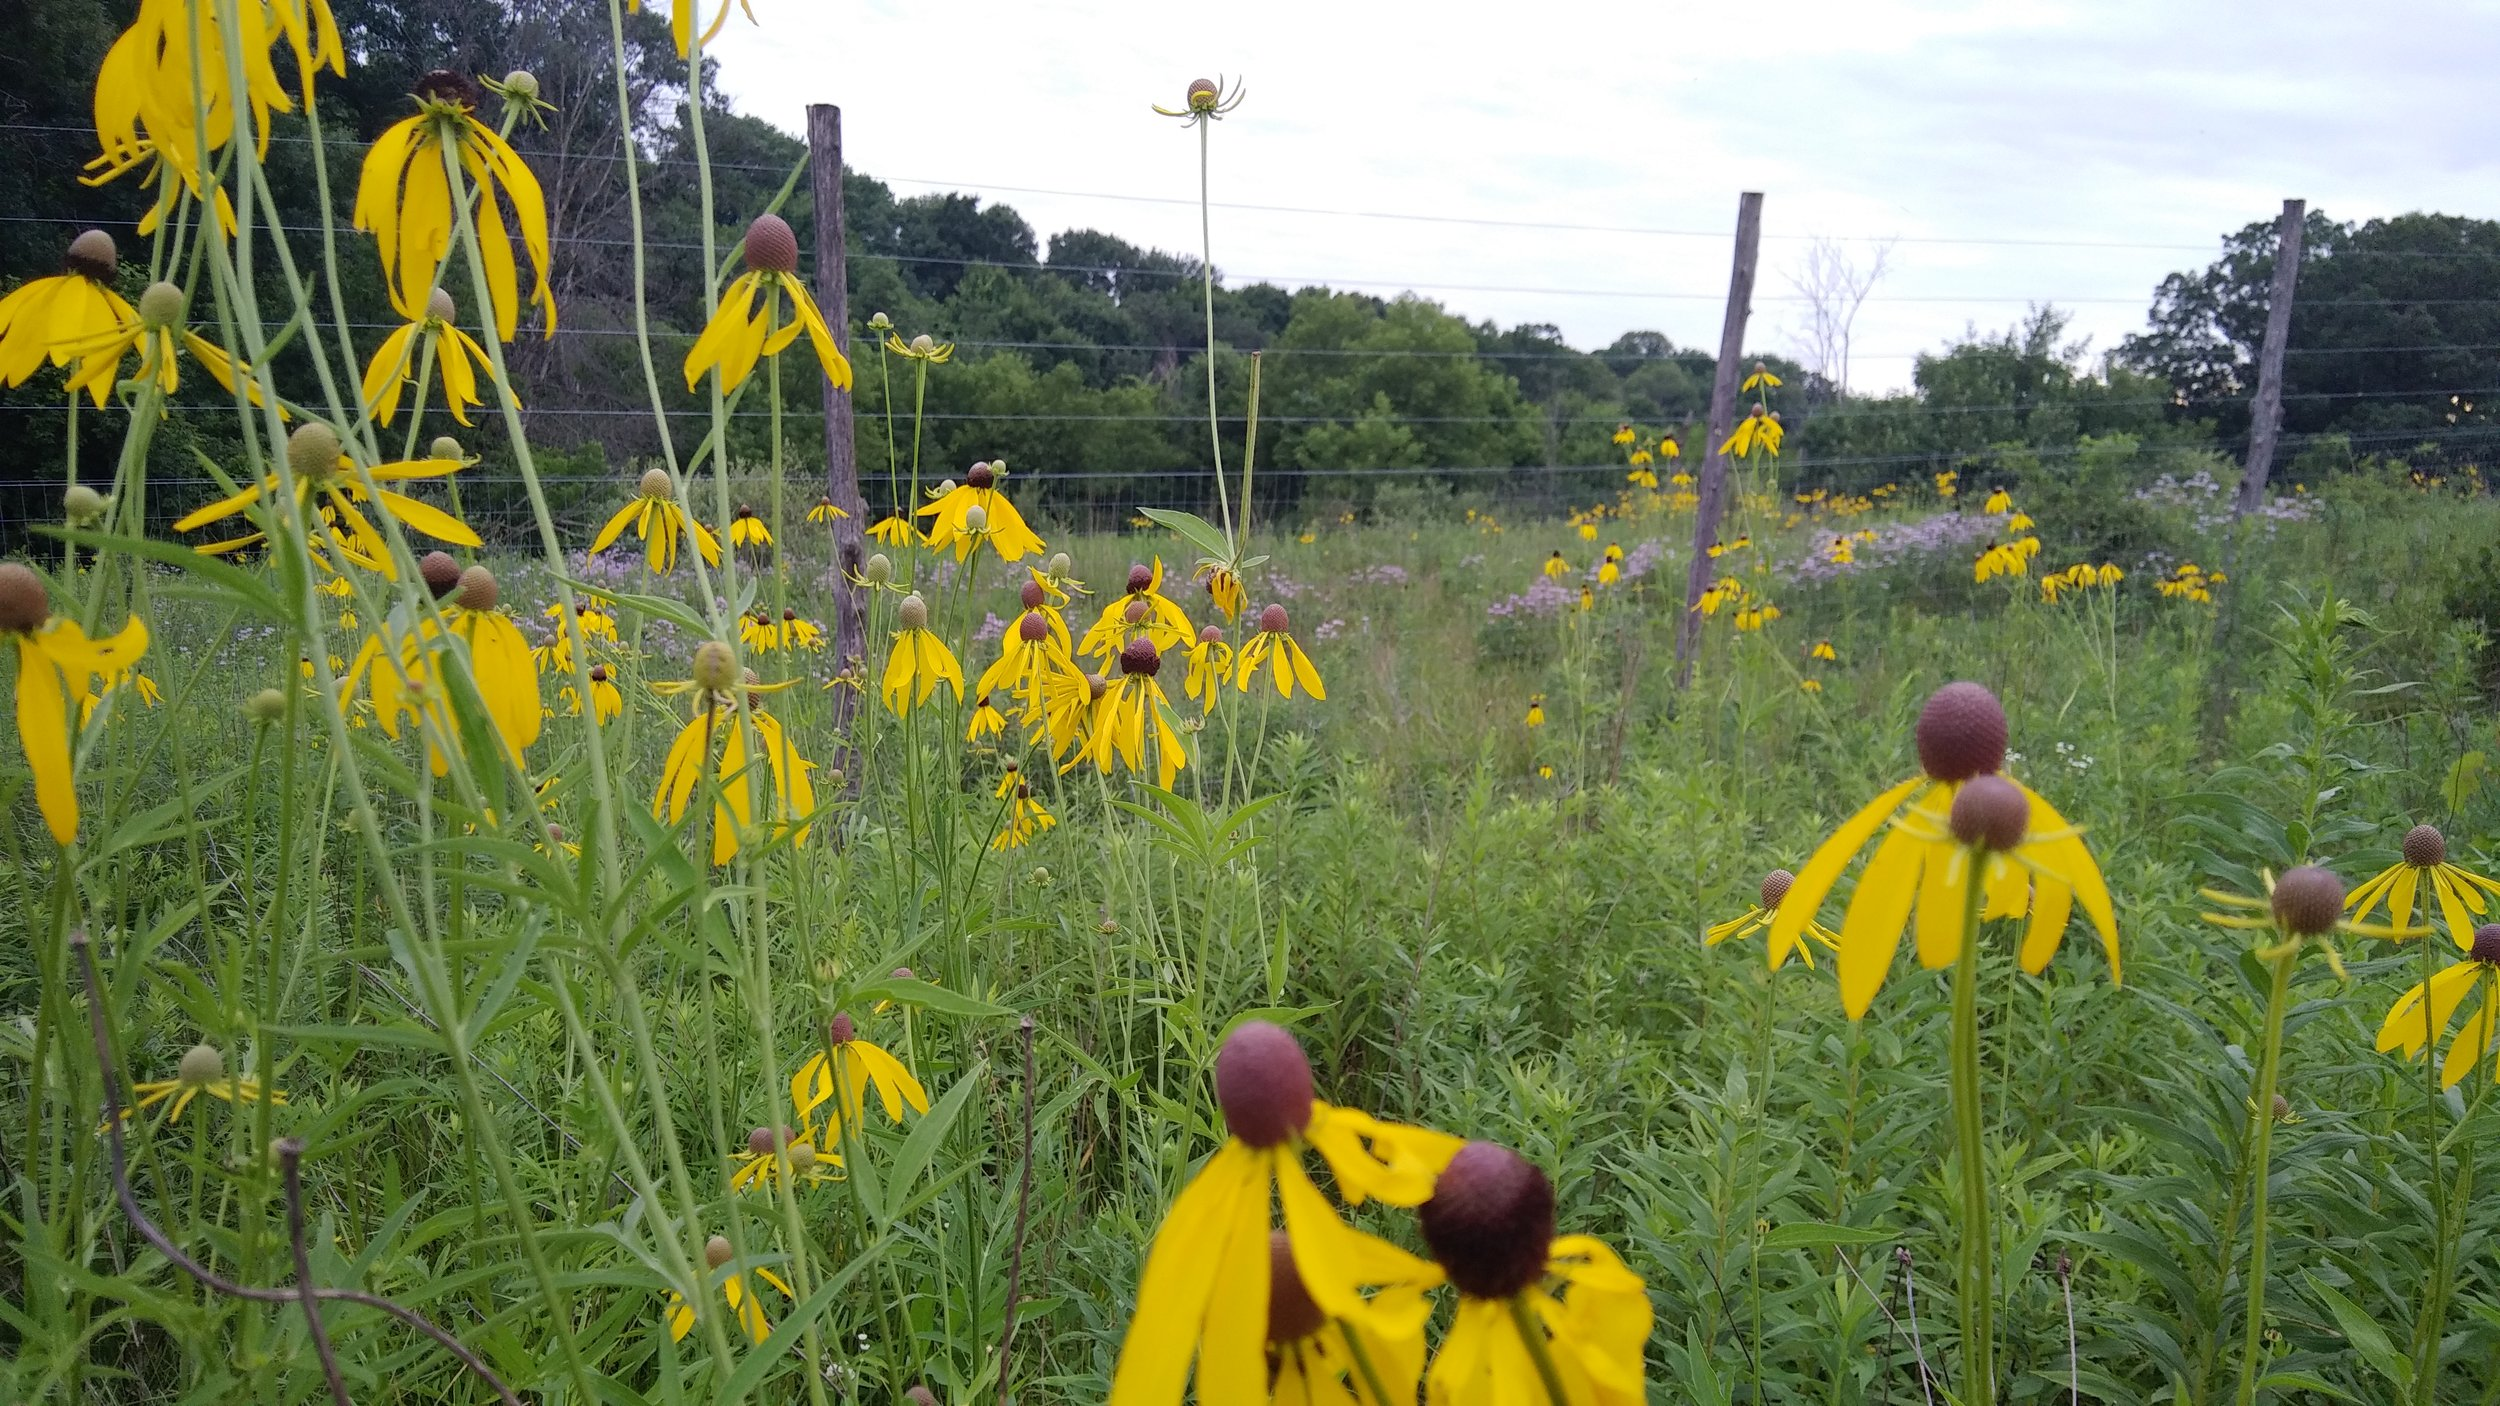 Yellow Coneflower a native perennial flower that graces the prairie and field borders as well as your vases. July 2018 Photo by Erin Schneider